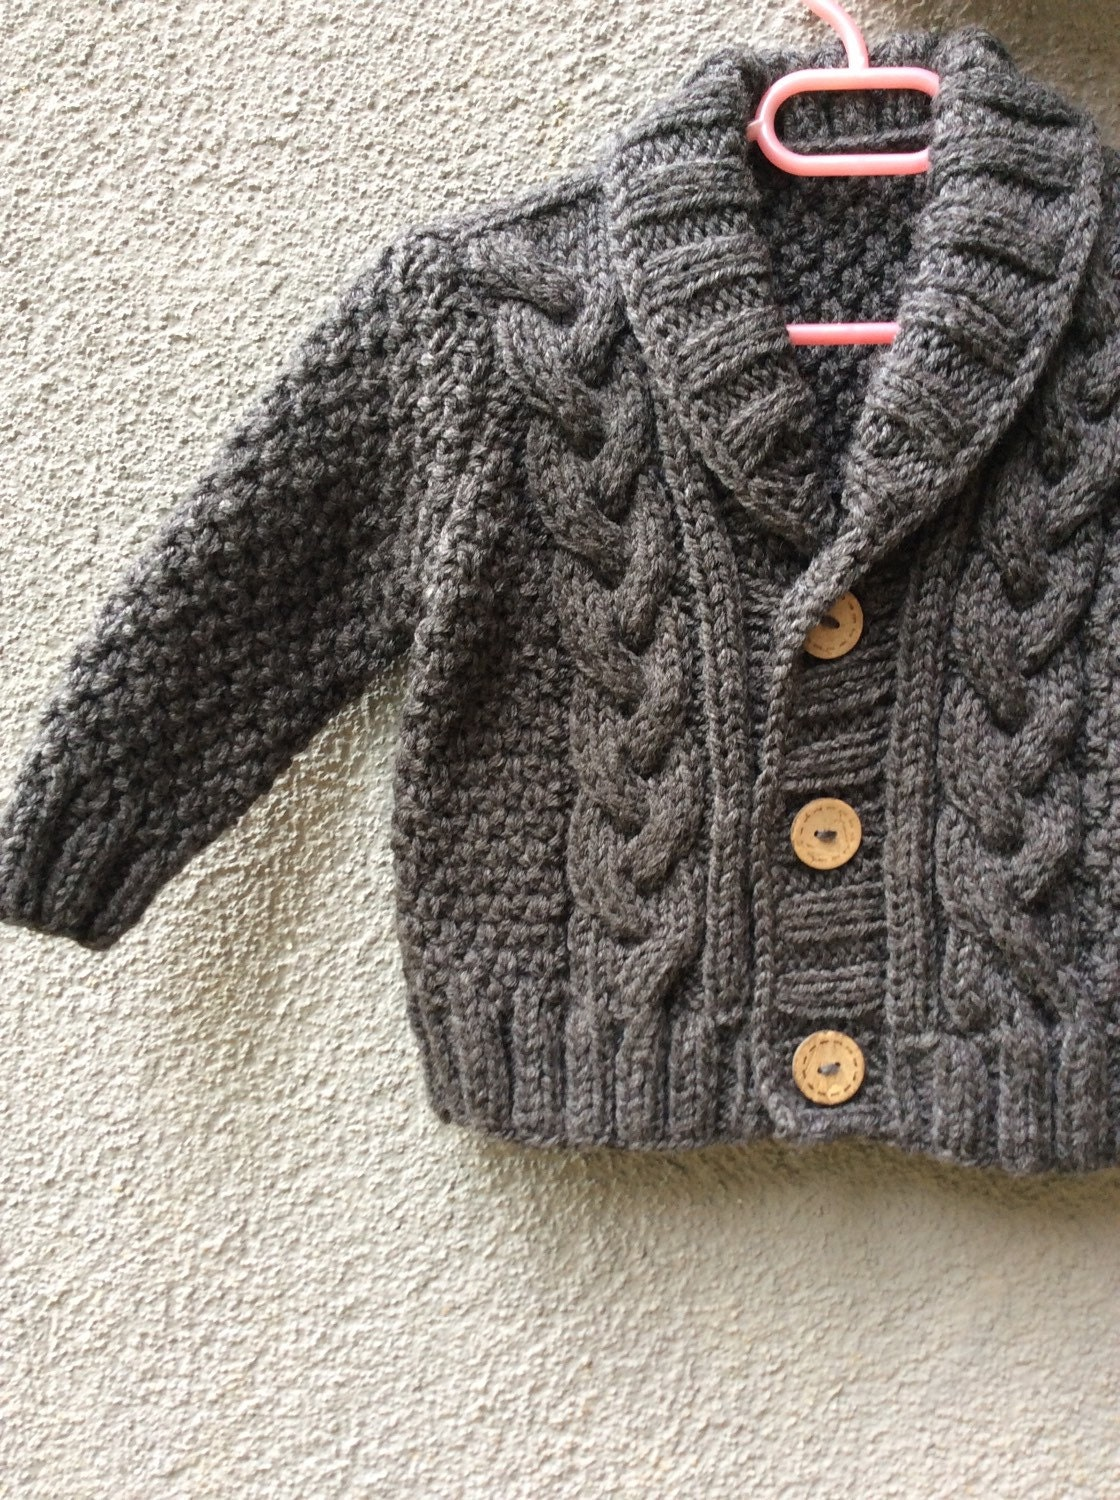 53cda510e212 Grey Knitted Baby Cardigan Baby Boy Cable Sweater Coat Cute